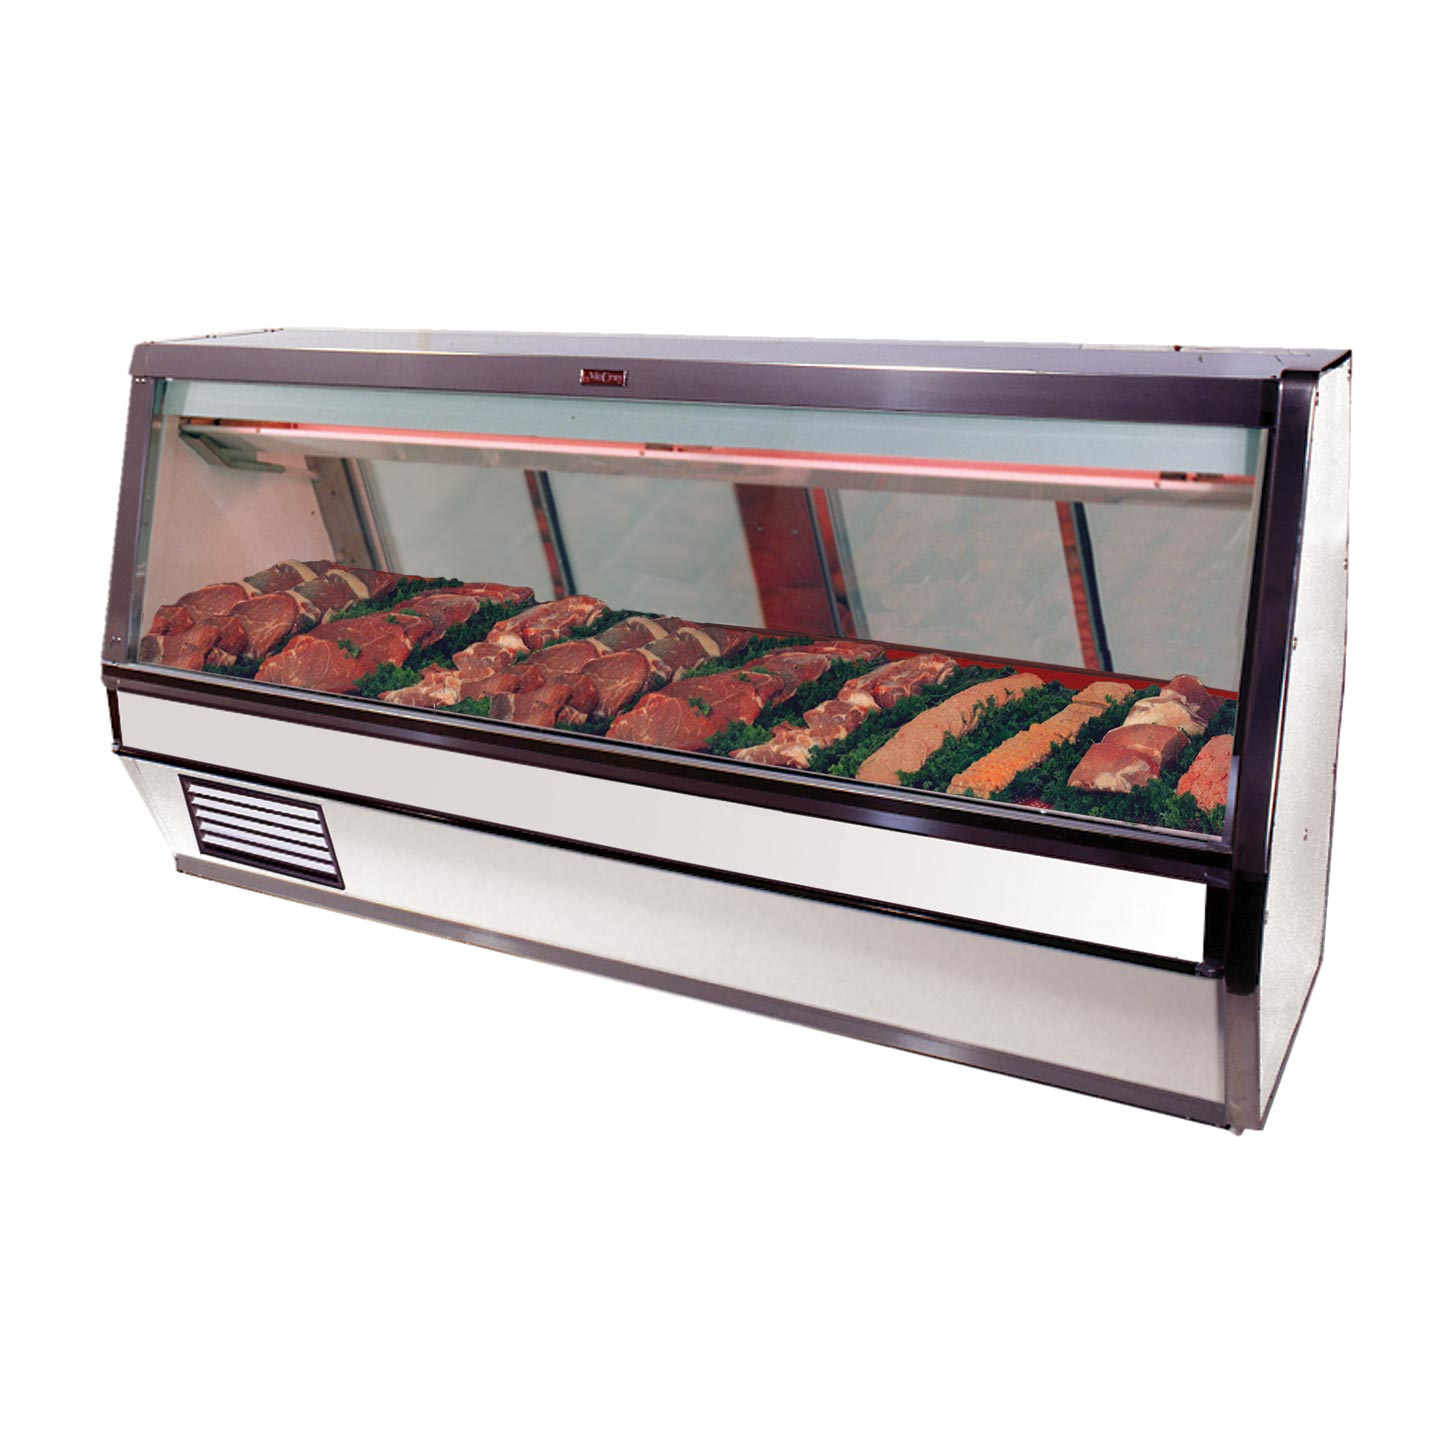 Howard-McCray R-CMS40E-12-LED display case, red meat deli